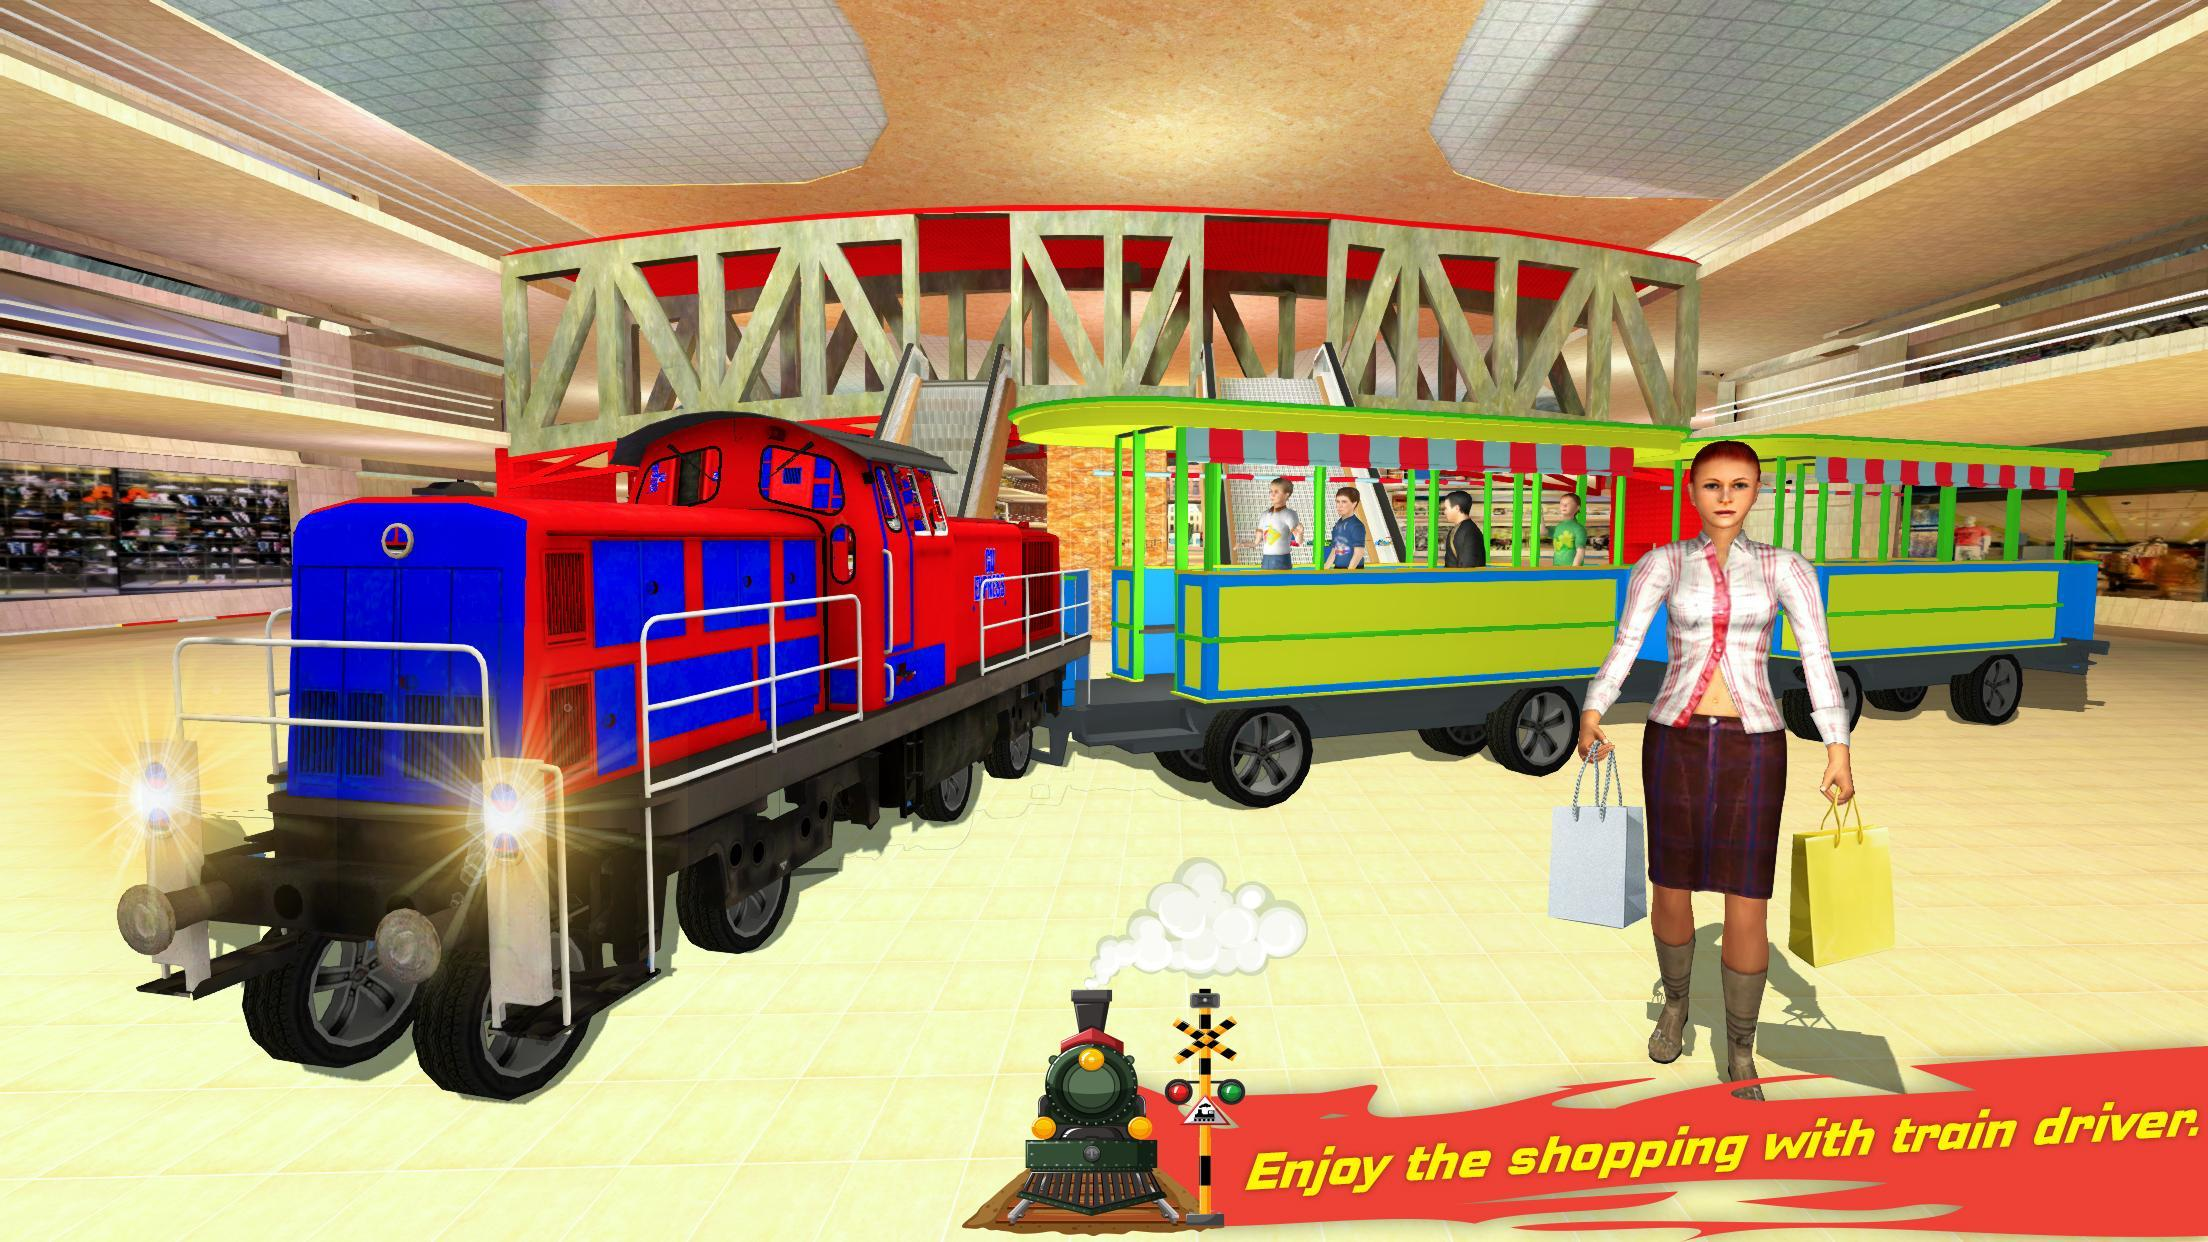 Christmas Shopping Simulator.Christmas Shopping Mall Rush Train Simulator For